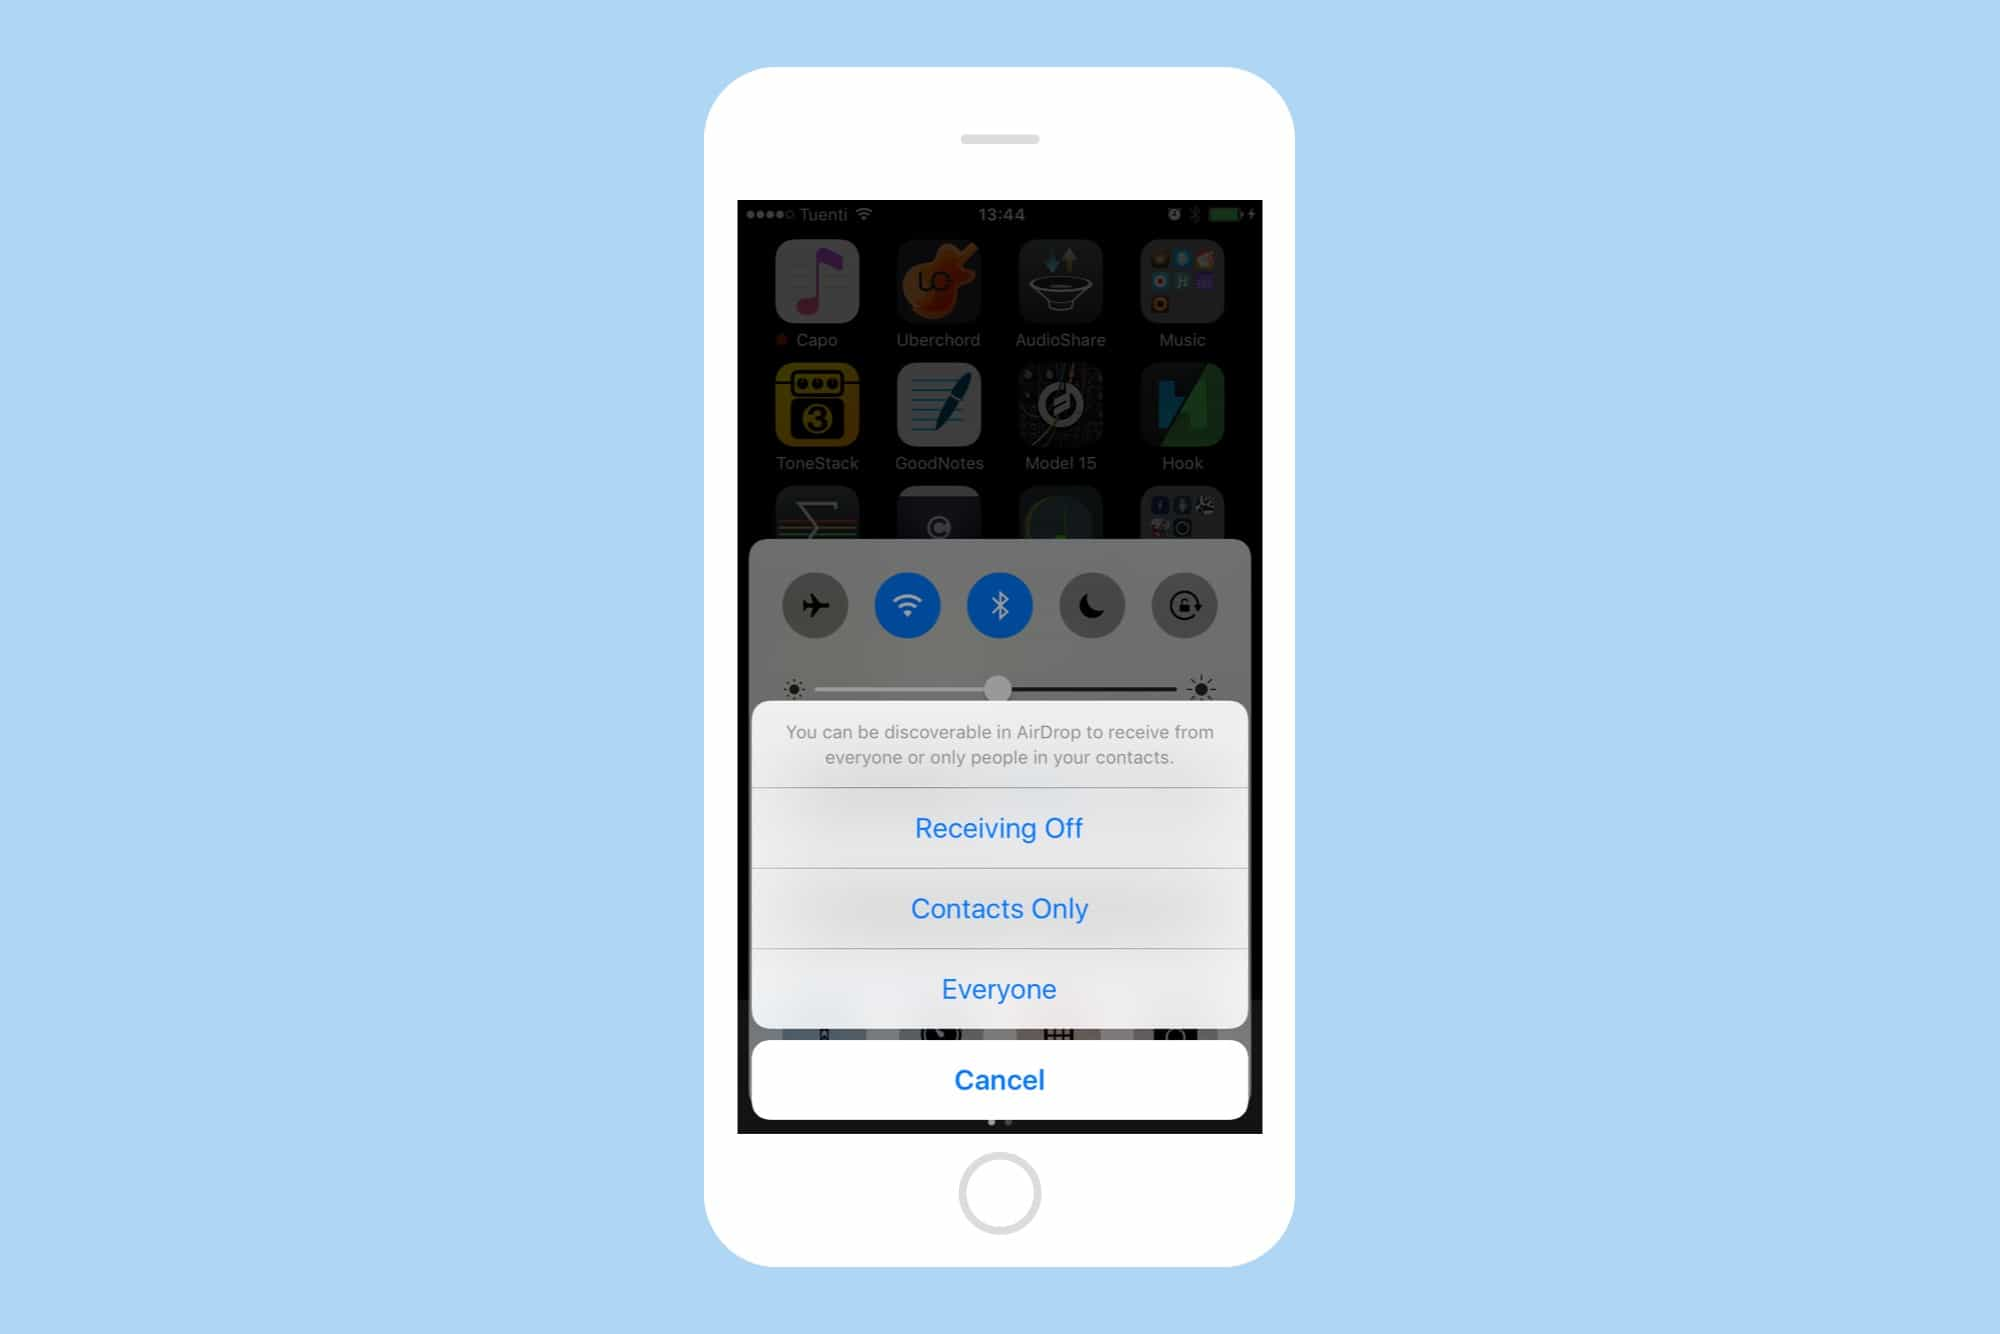 Setting Up Airdrop On Ios 10